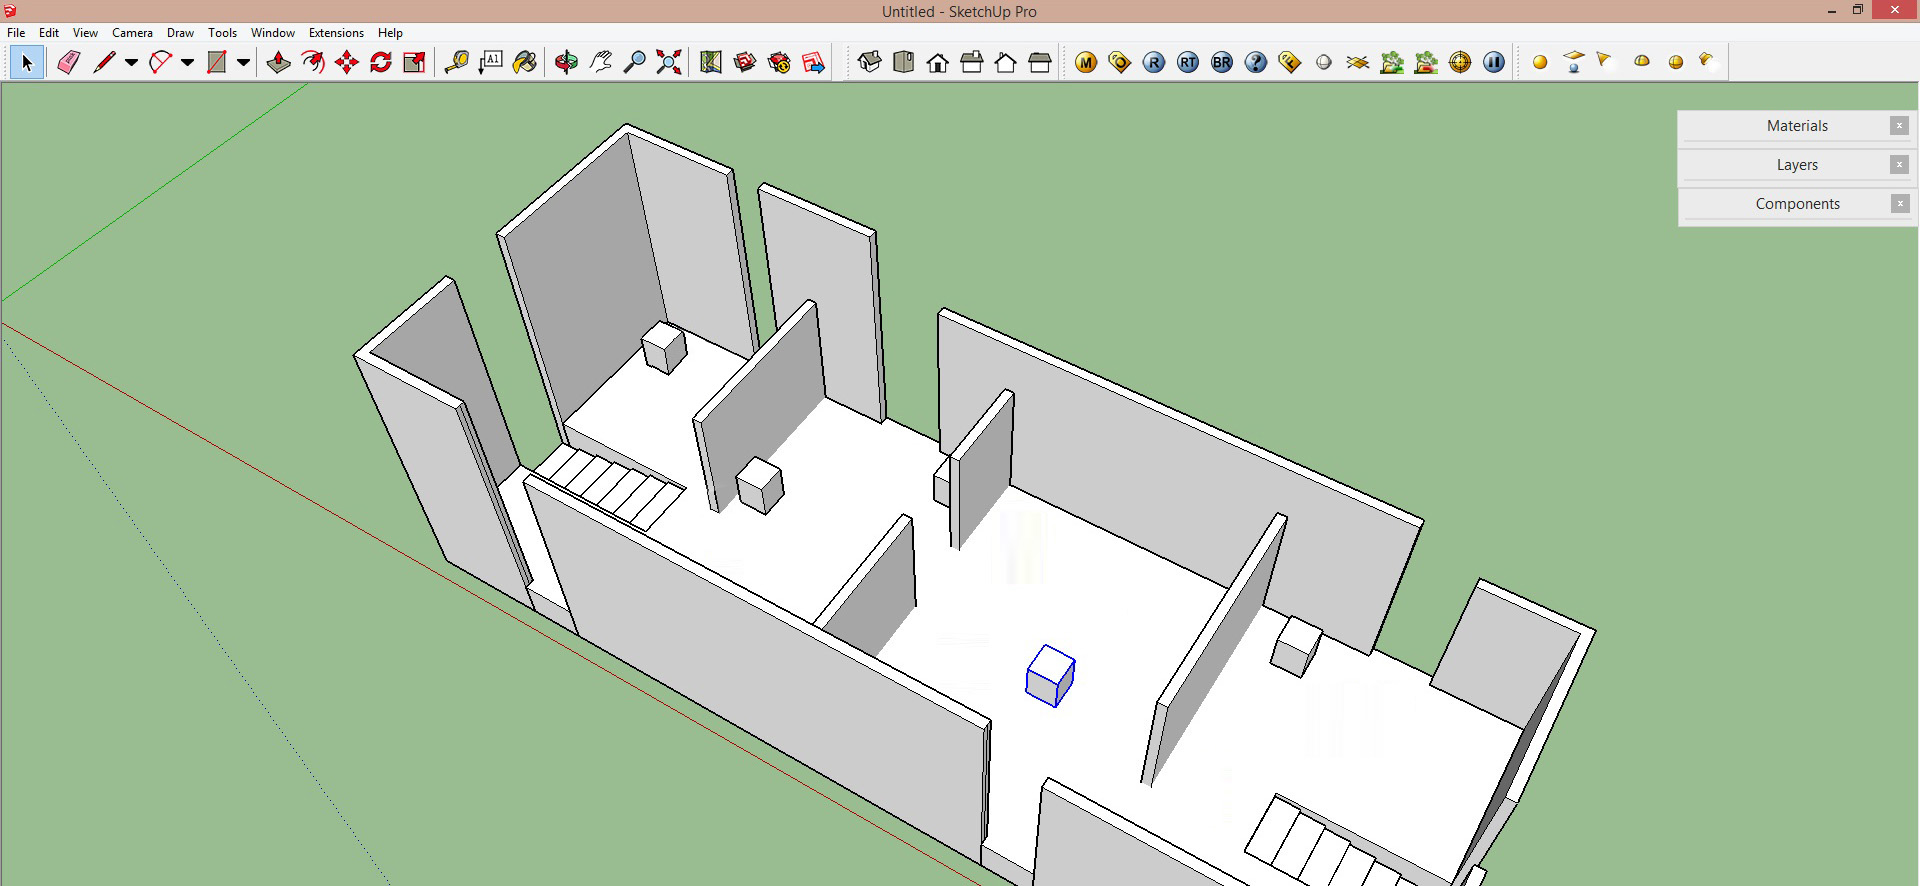 Architectural Drawing Window how to create a quick sectional architecture drawing in sketchup